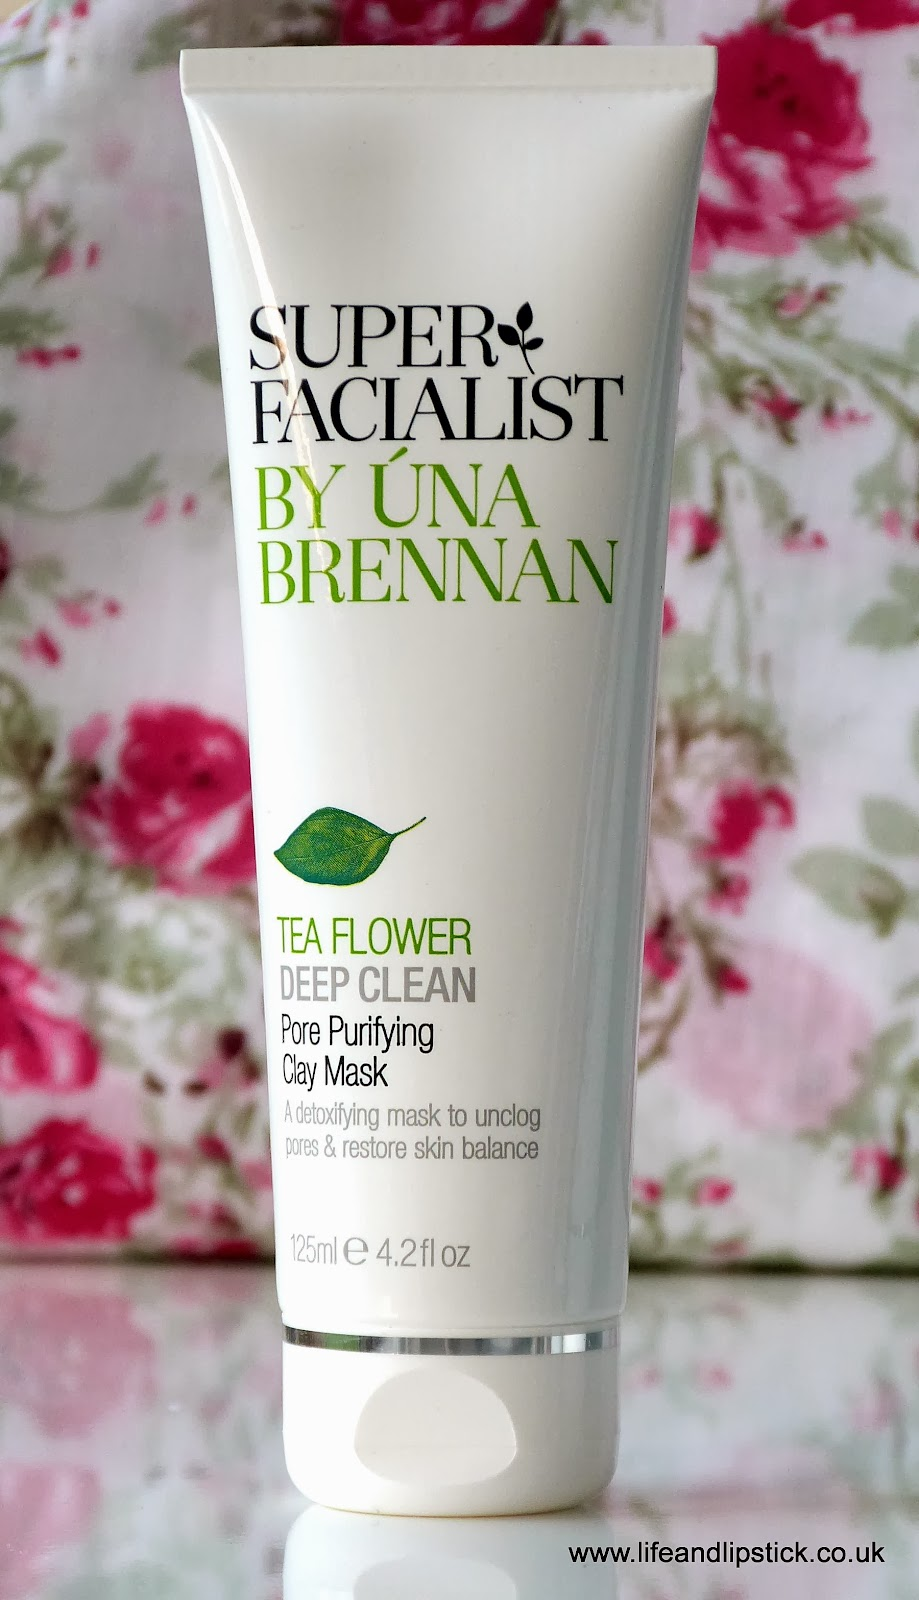 Super Facialist by Una Brennan Pore Purifying Clay Mask